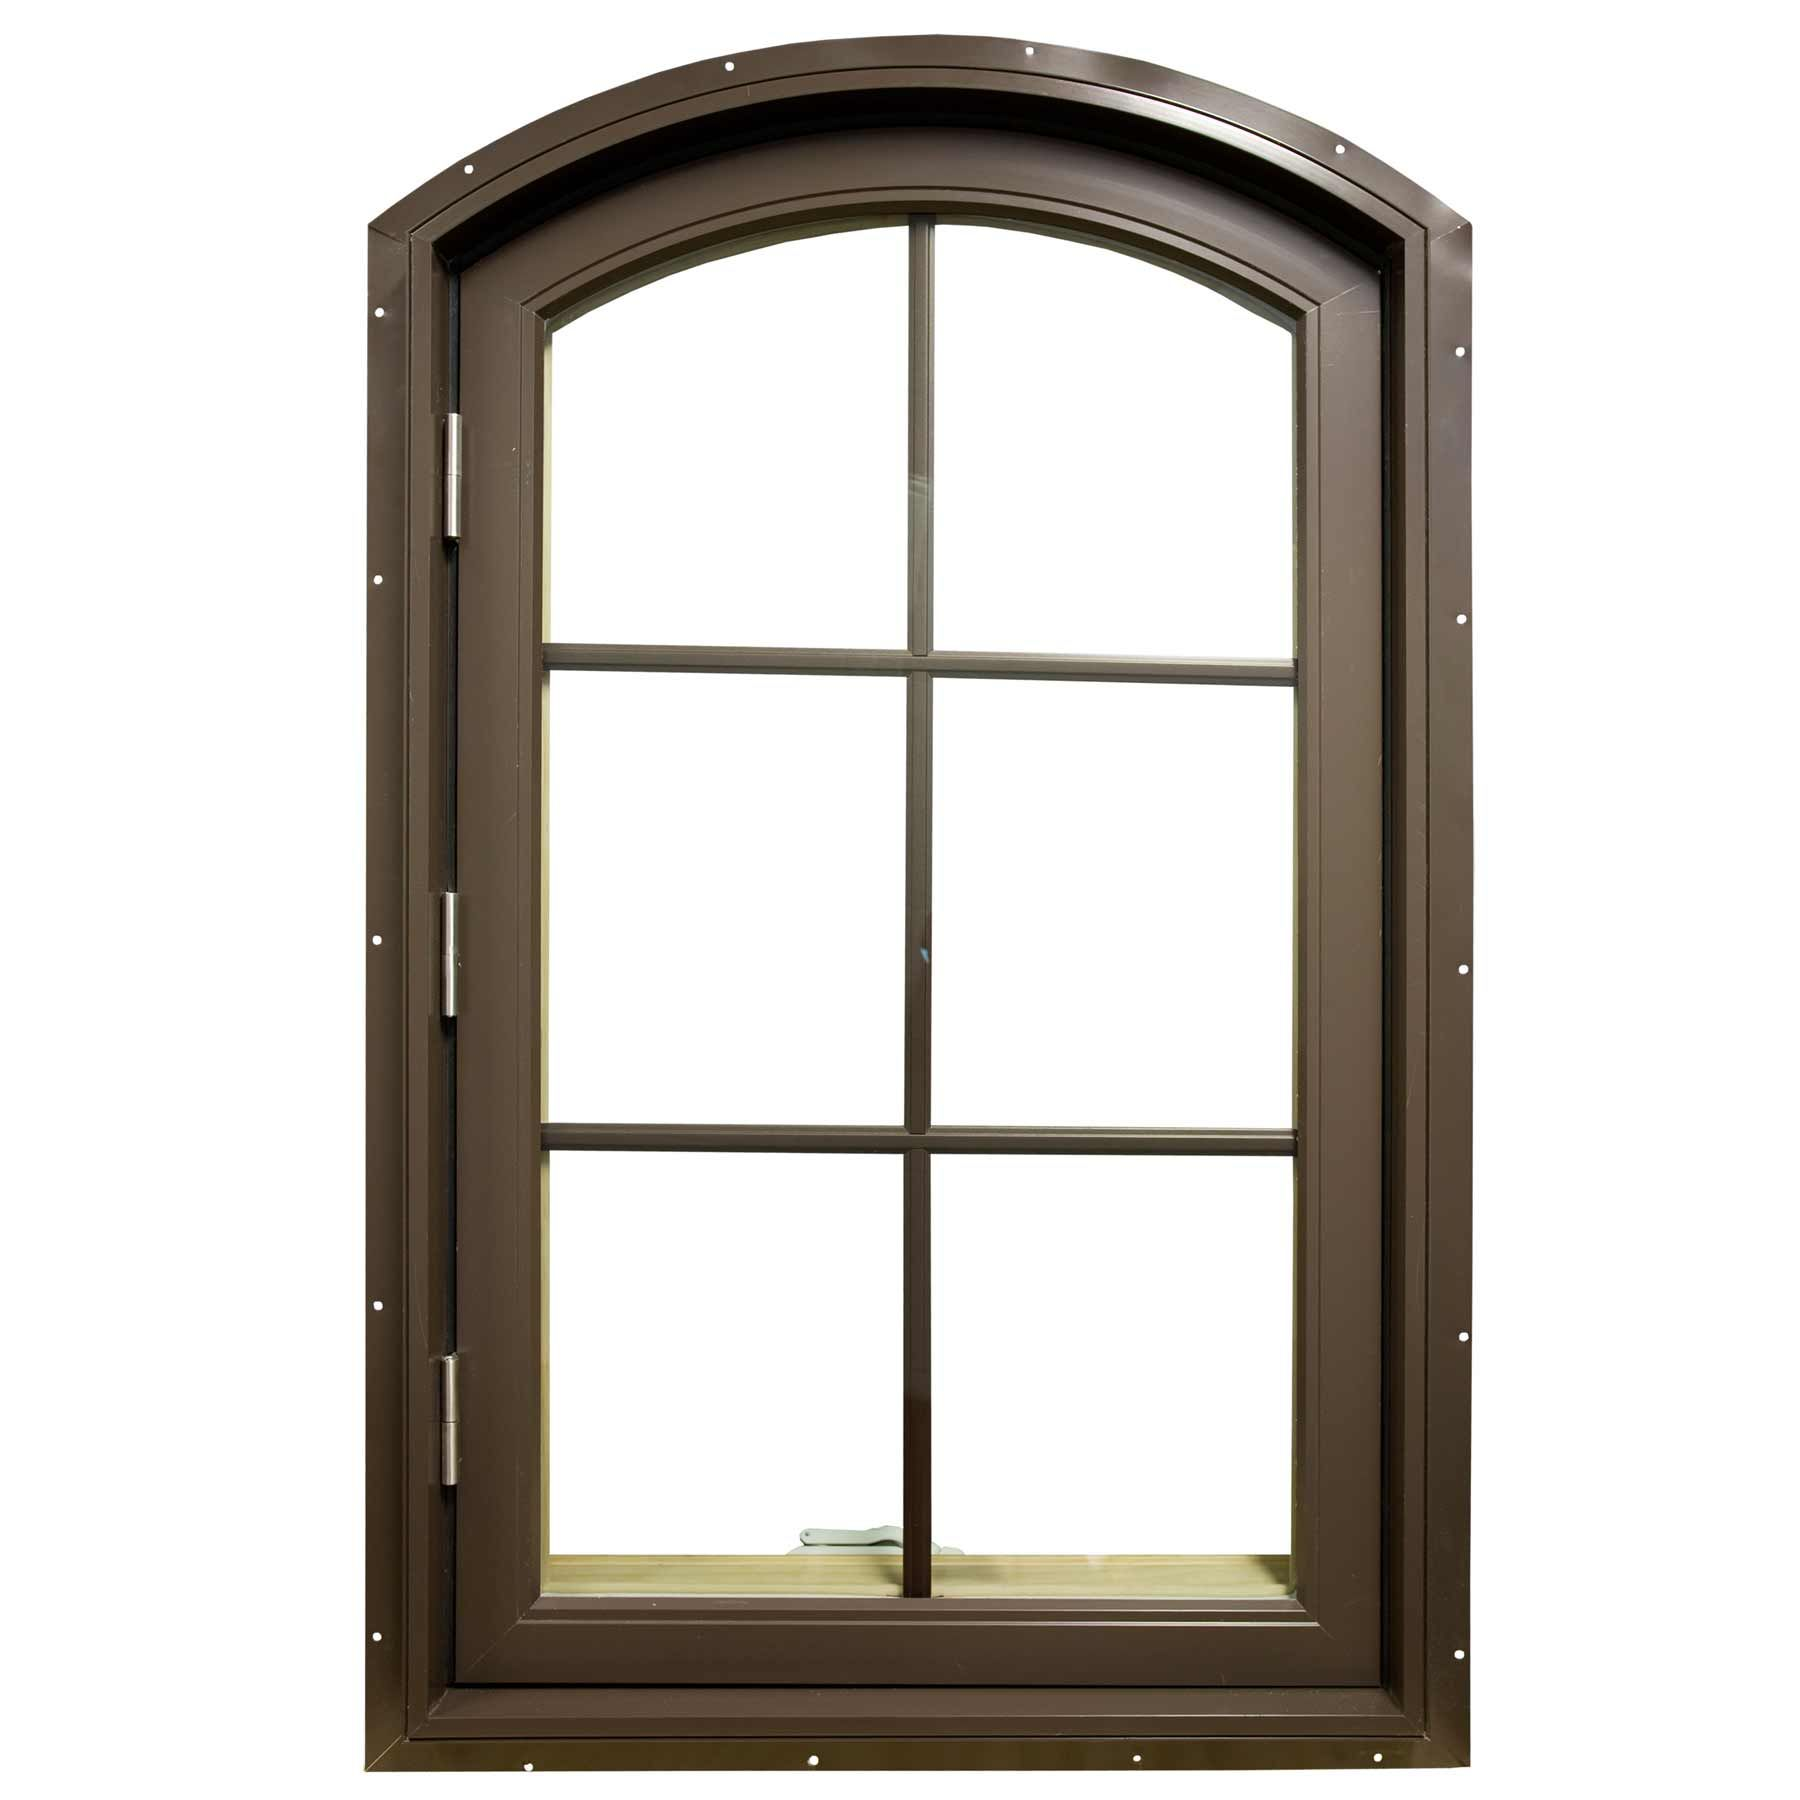 Aluminum casement windows for home feel the home for New windows doors